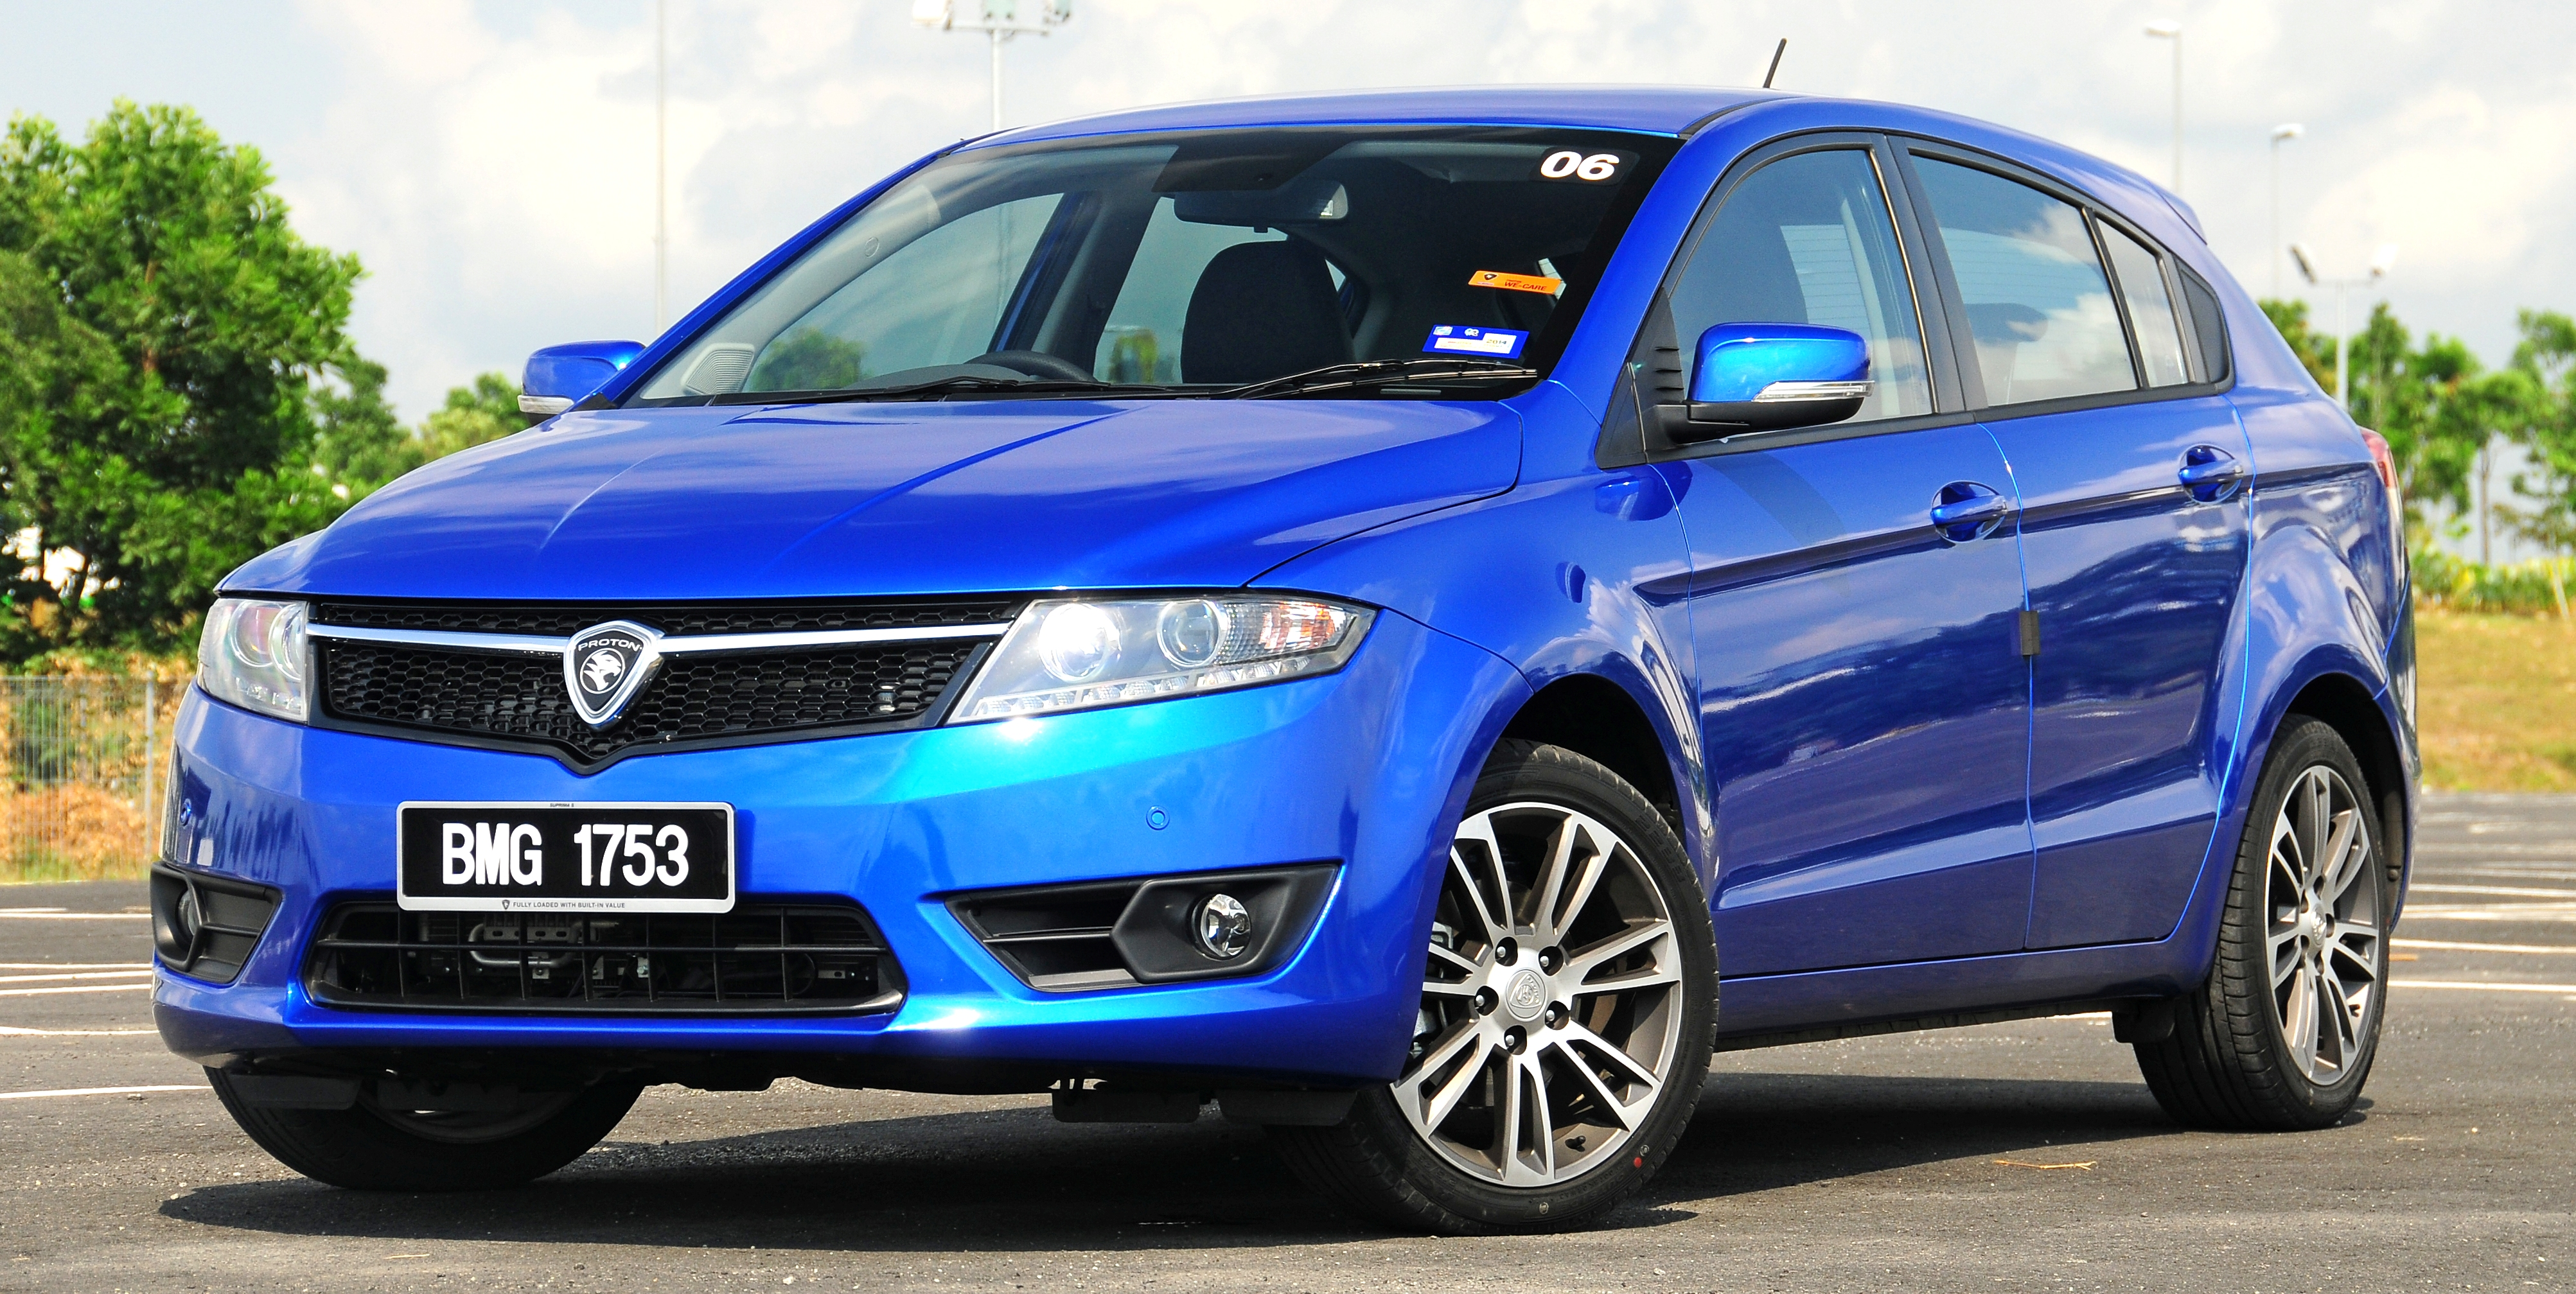 Proton Suprima S Front Three Quarter Facing Left - Proton Suprima S Price In Malaysia